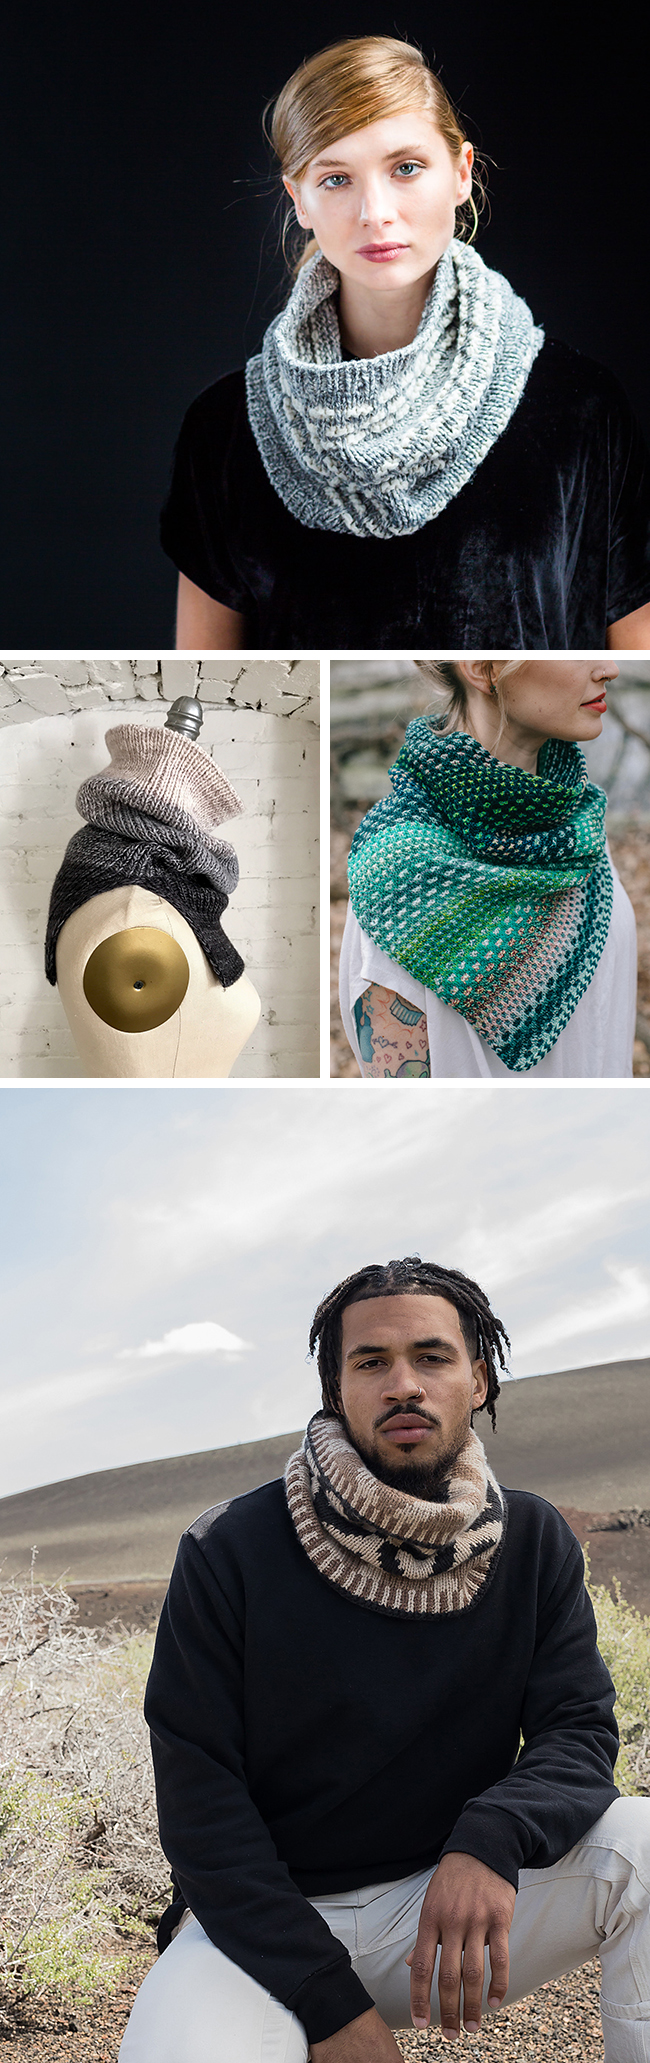 Quick Knits: Cowls (holiday knitting pattern suggestions)